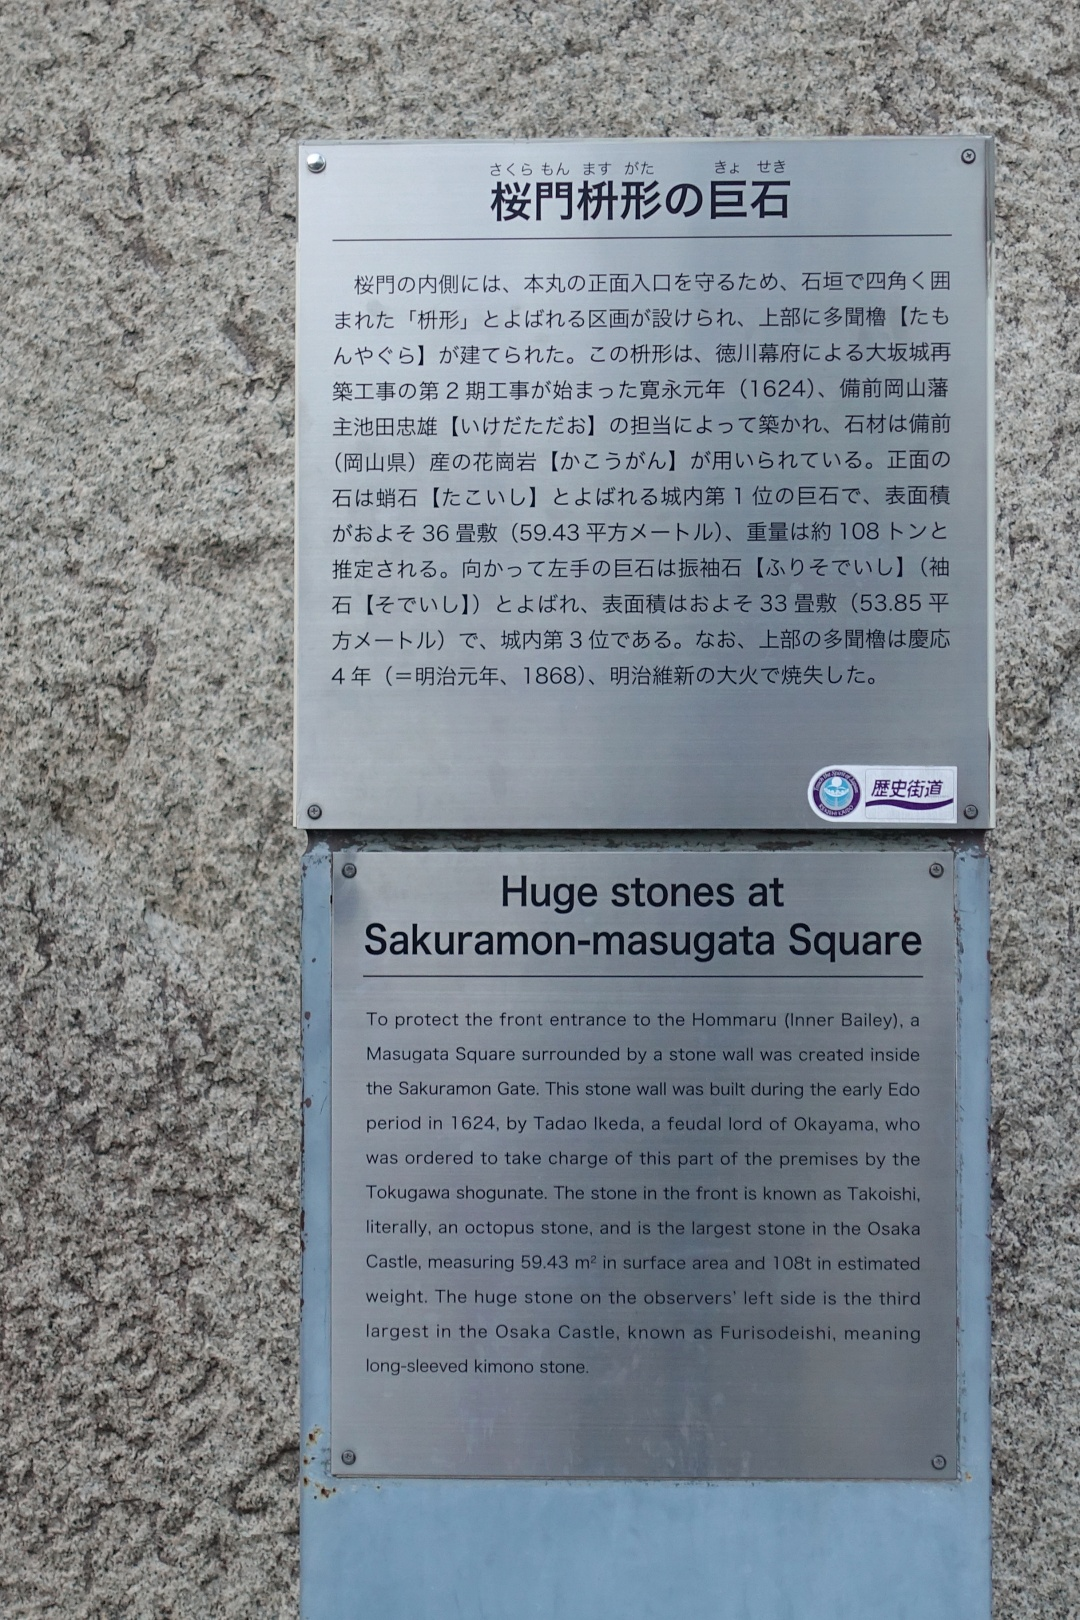 Huge Stones at Sakuramon-masugata Square | joanne-khoo.com